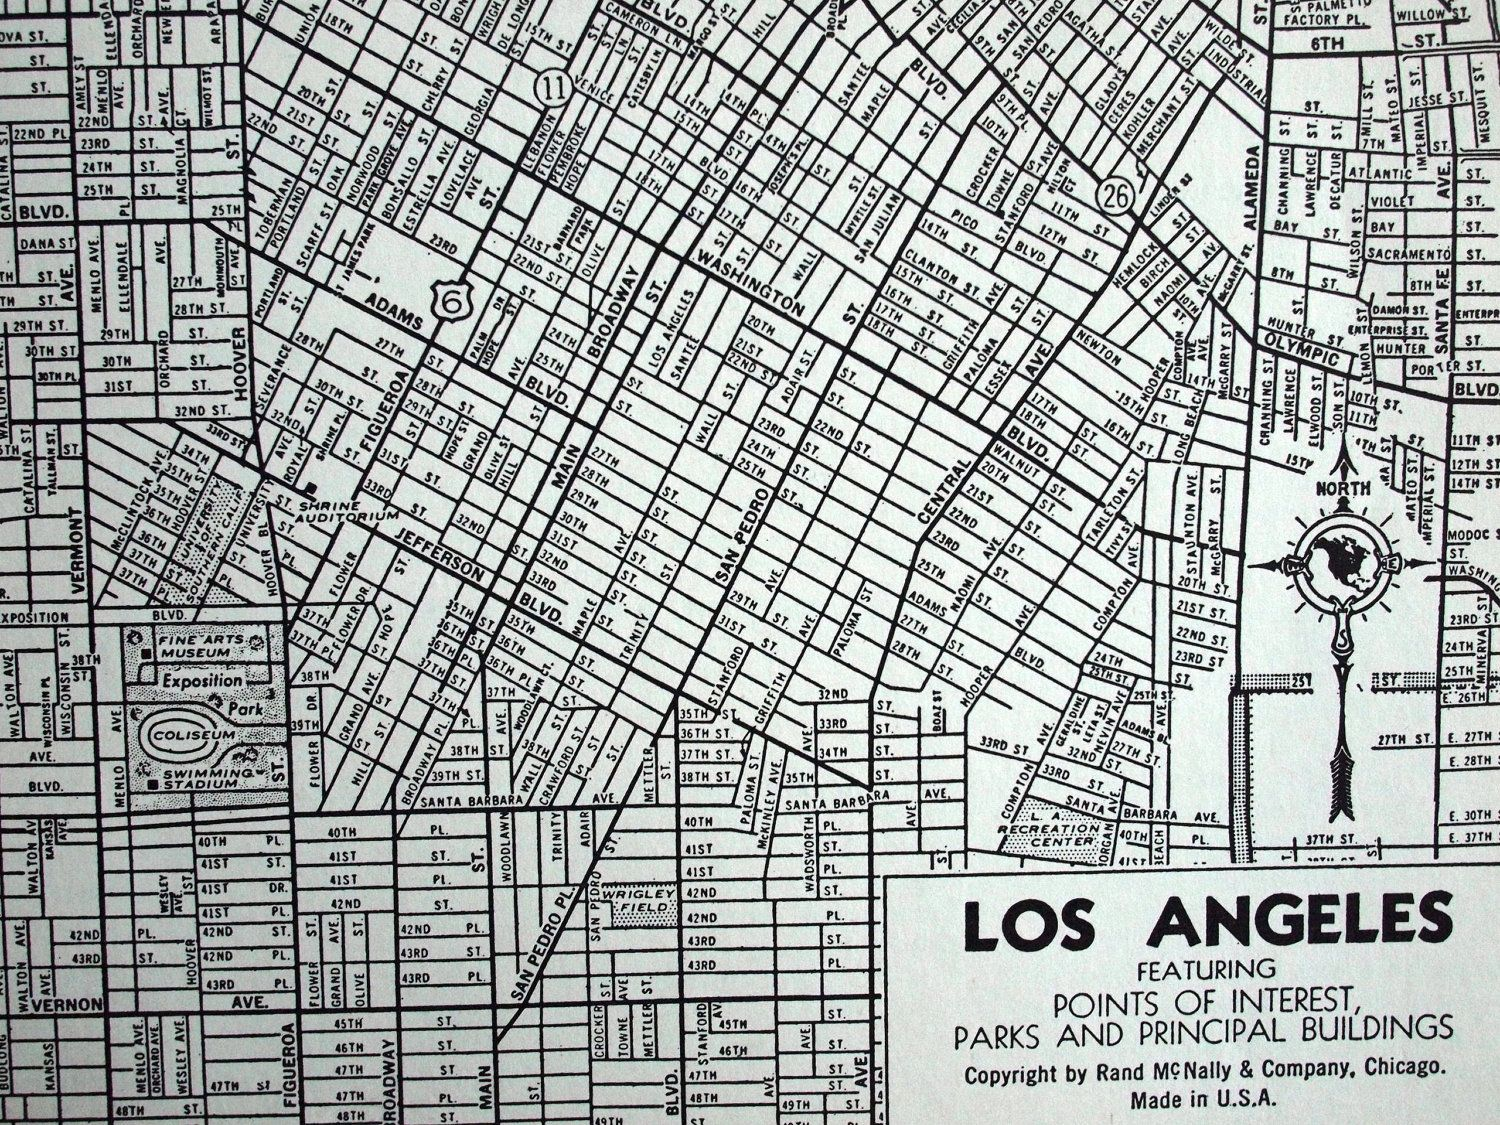 1944 Vintage Map of Los Angeles California. by bananastrudel | 255 on california map highways, buenos aires points of interest, california map things to do, california map streets, turkey points of interest, california map directions, california map campgrounds, egypt points of interest, india points of interest, mexico points of interest, morocco points of interest, california map poi, highway 101 points of interest, kenya points of interest, washington dc points of interest, san luis obispo points of interest, dubai points of interest, usa points of interest, new england points of interest, tokyo points of interest,